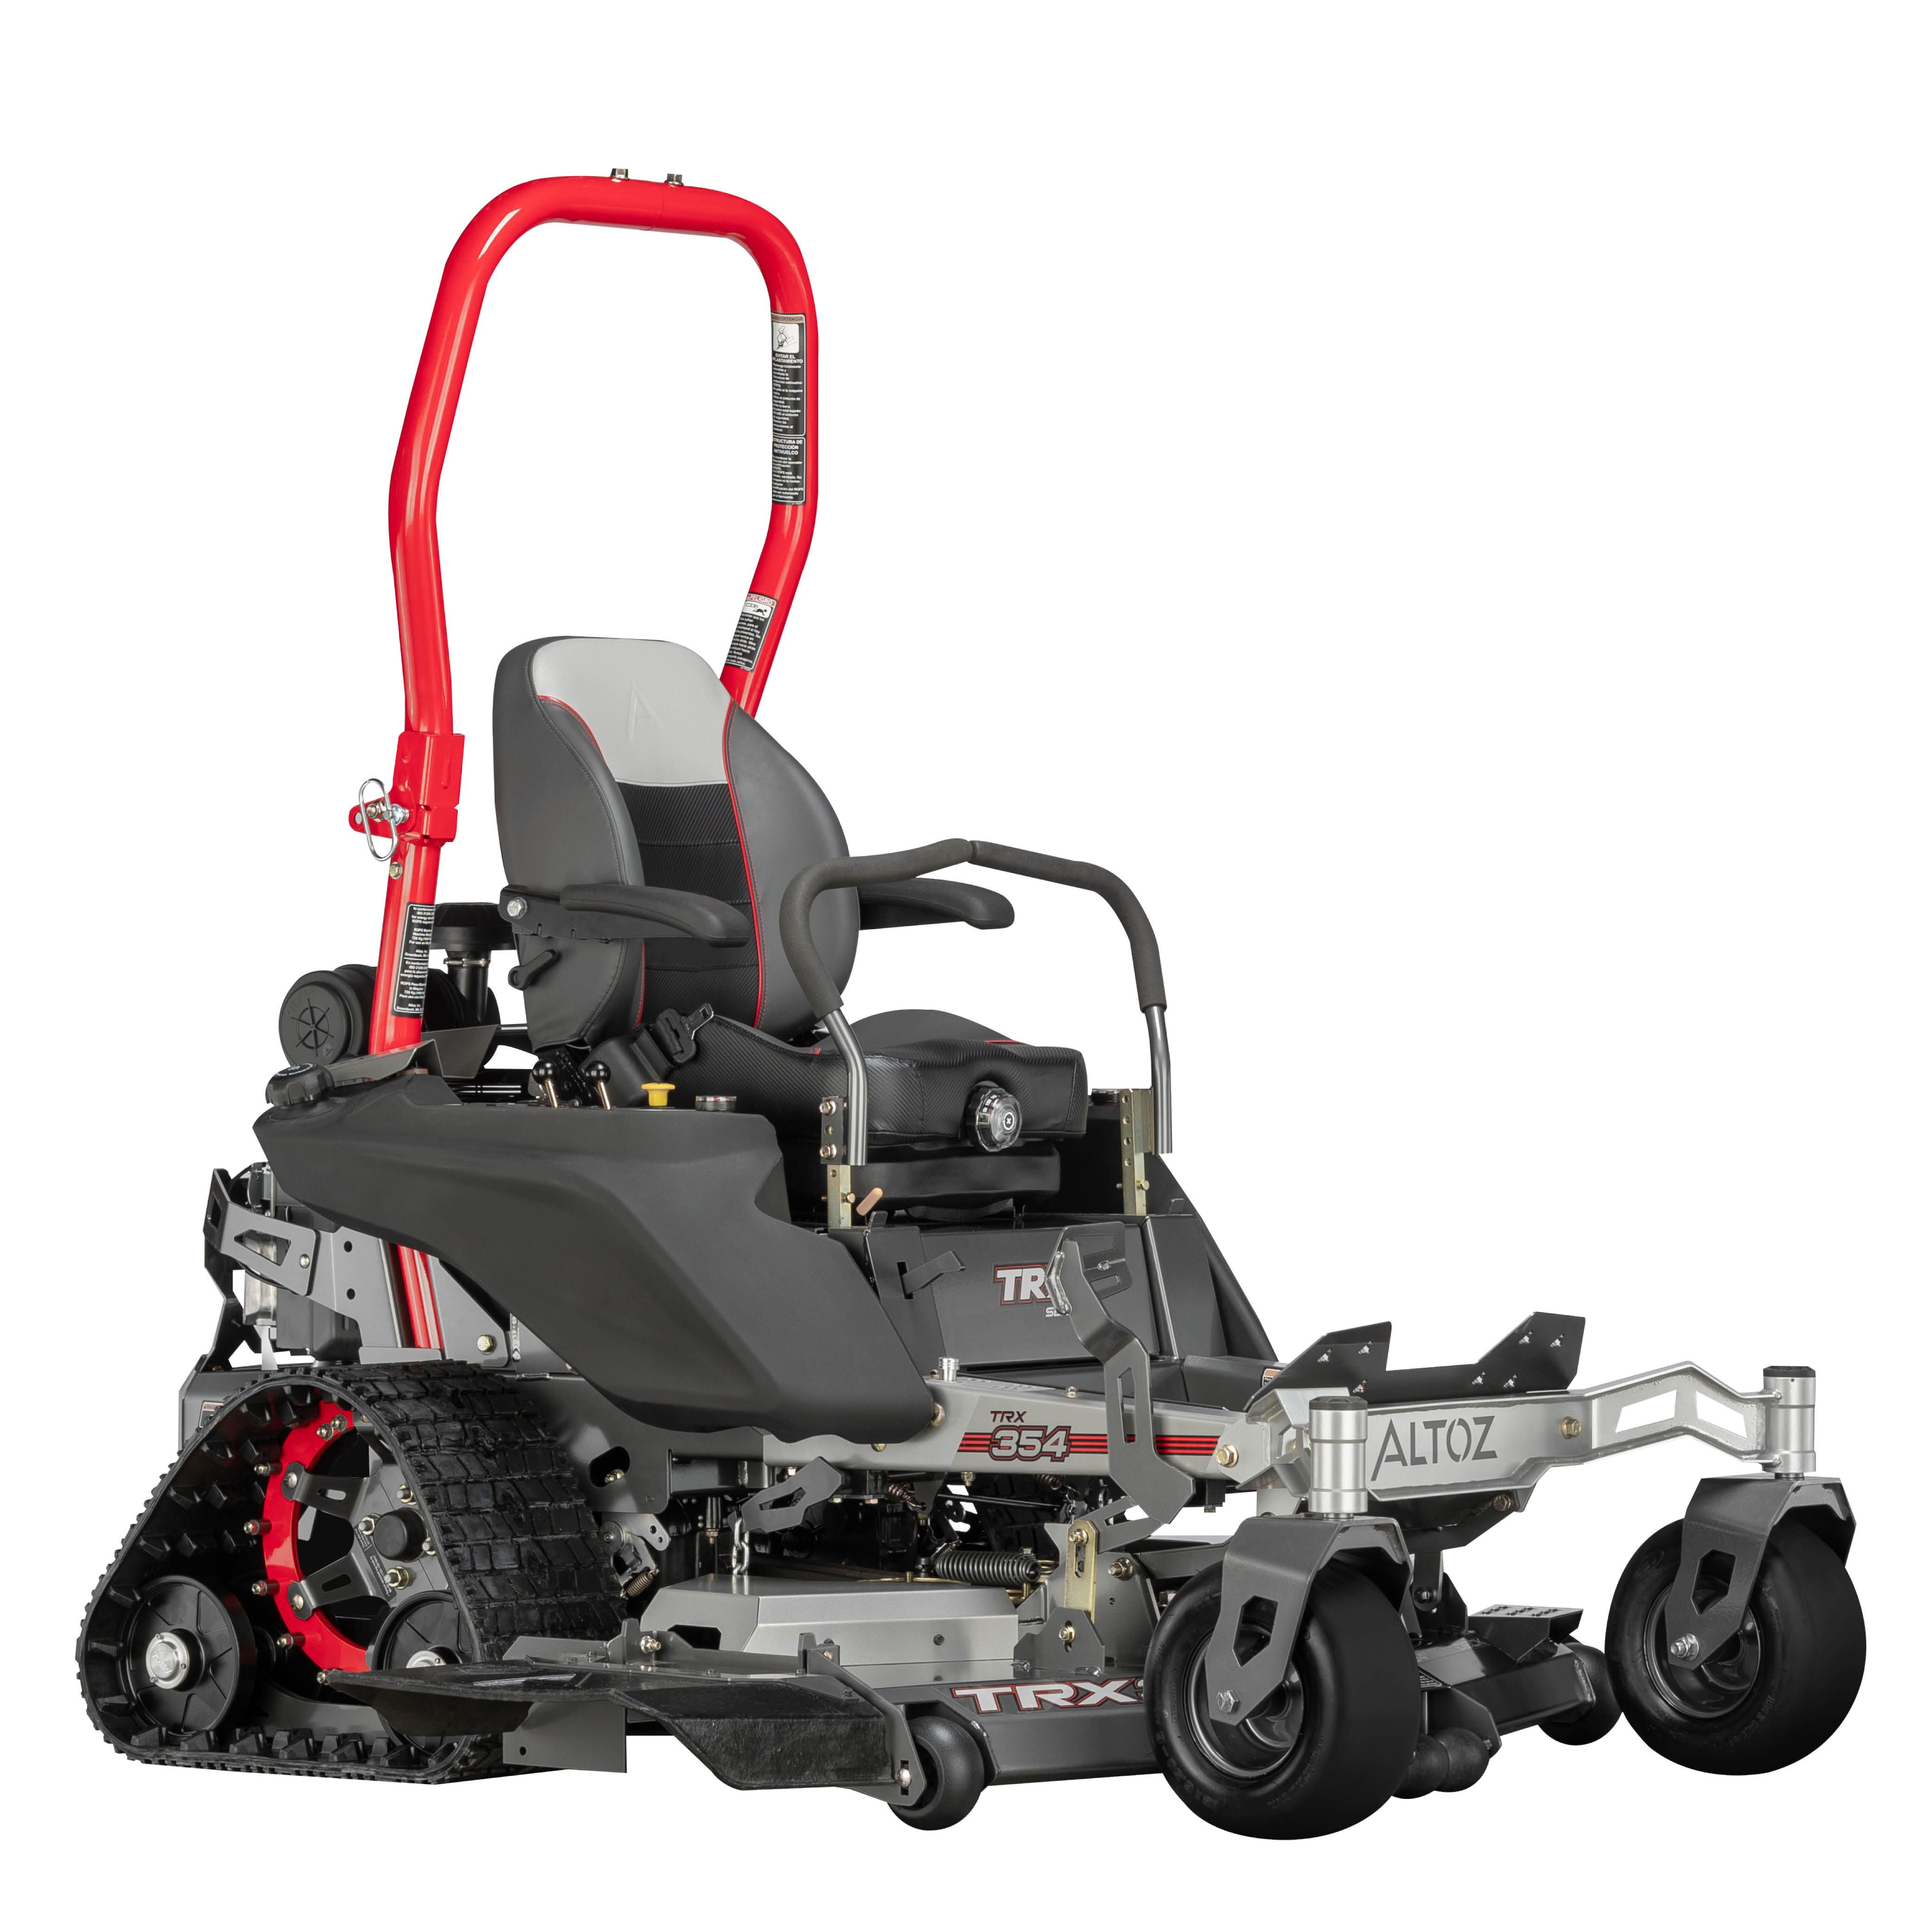 Altoz Trx 354 Zero Turn Mower With Tracks Zero Turn Mowers Trx Mower